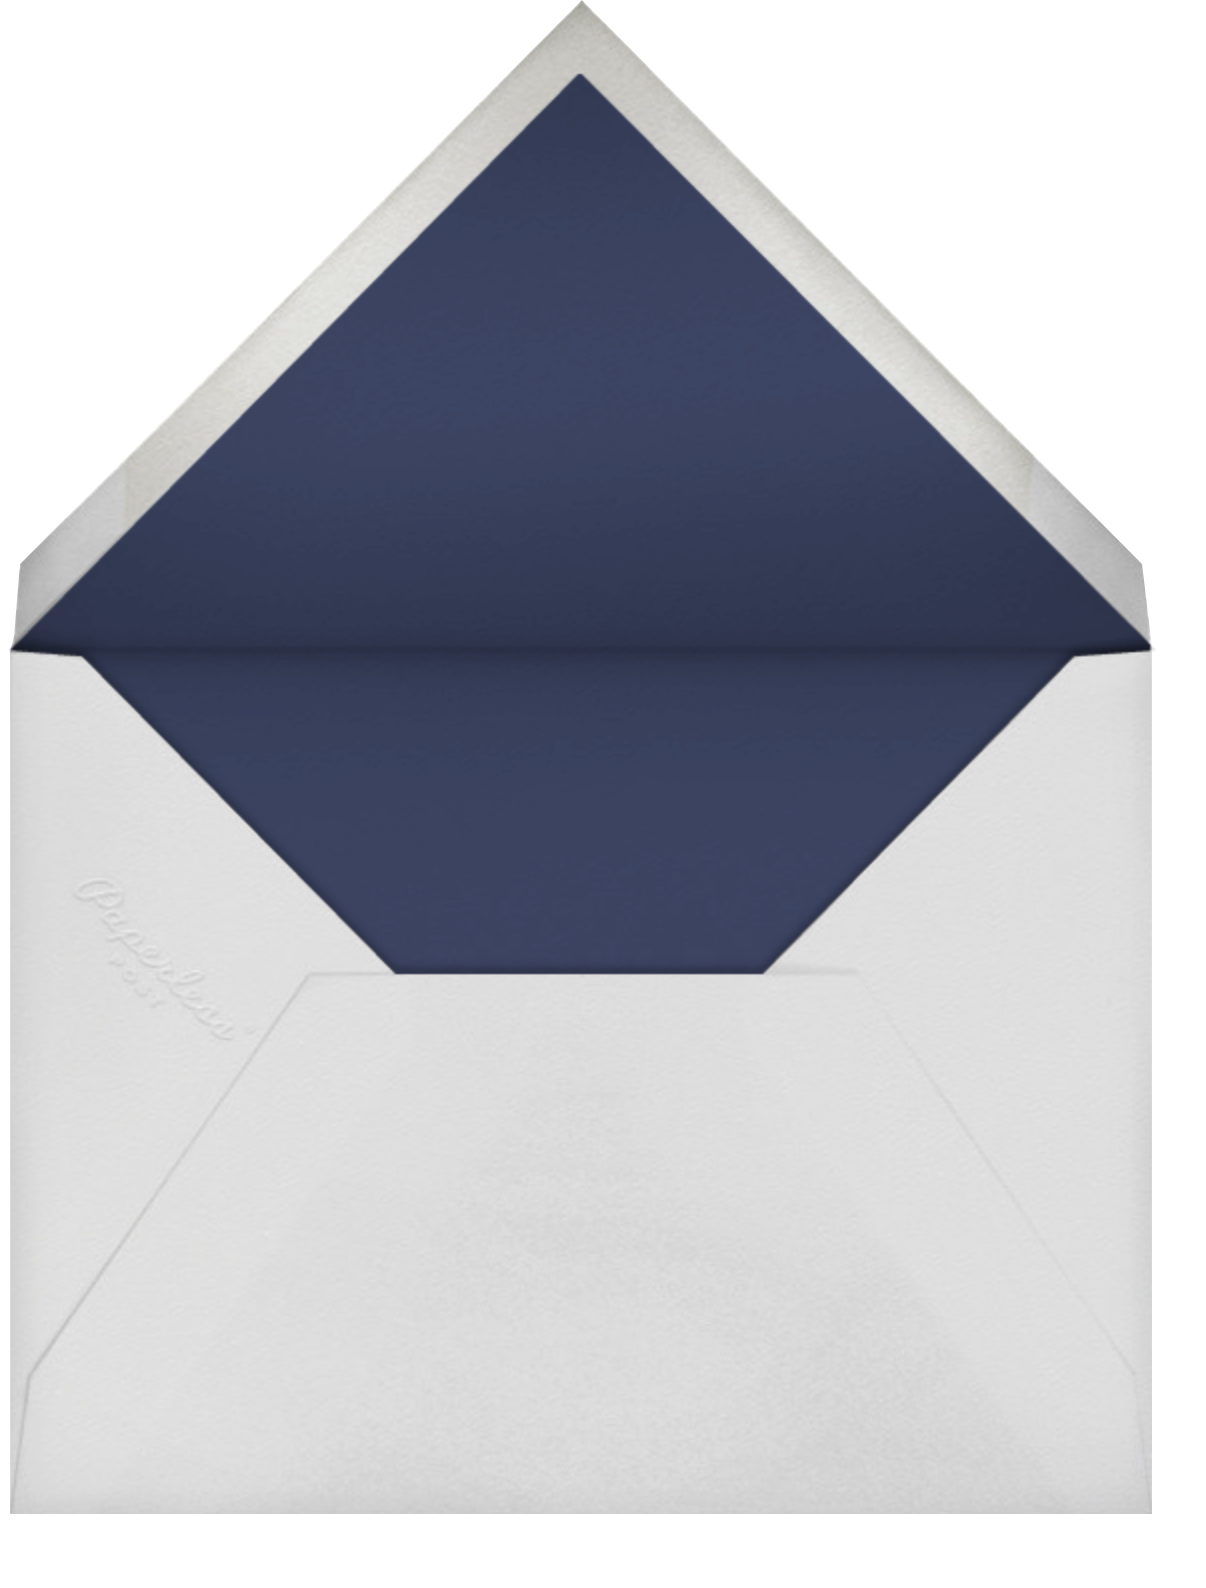 Gesso I (Save the Date) - Navy Blue - Paperless Post - null - envelope back